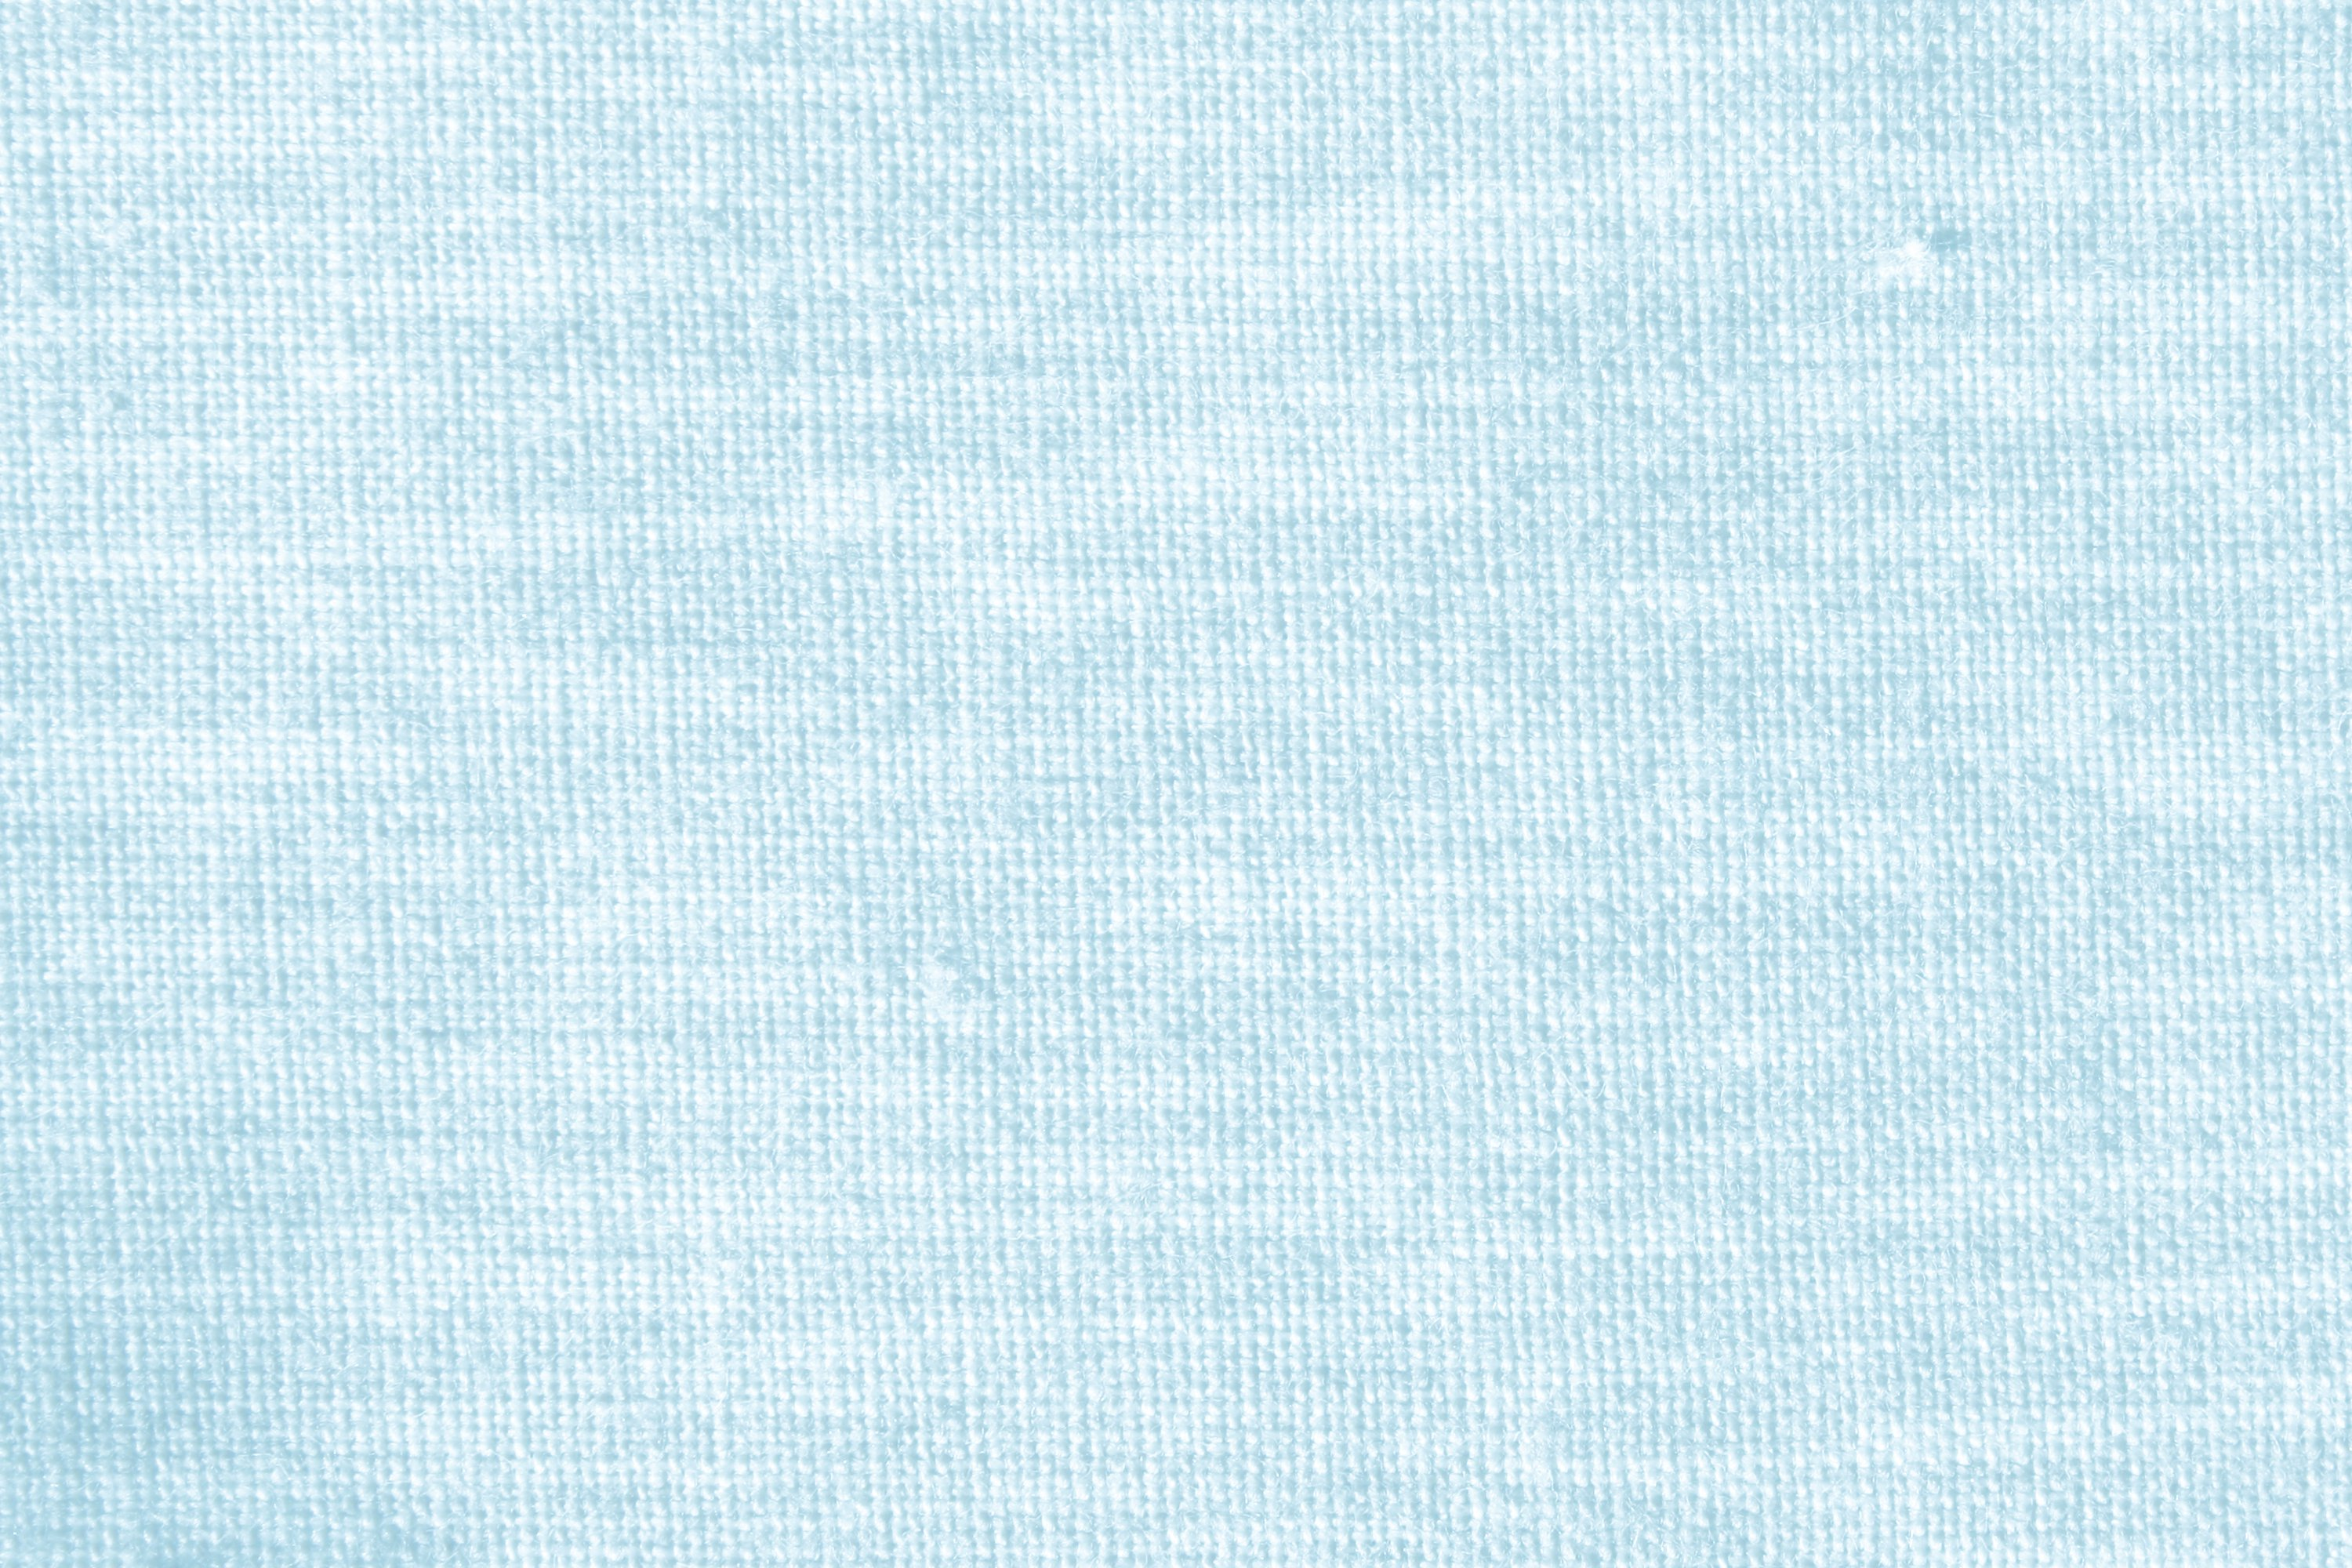 Light blue texture wallpaper wallpapersafari - Light blue linen wallpaper ...